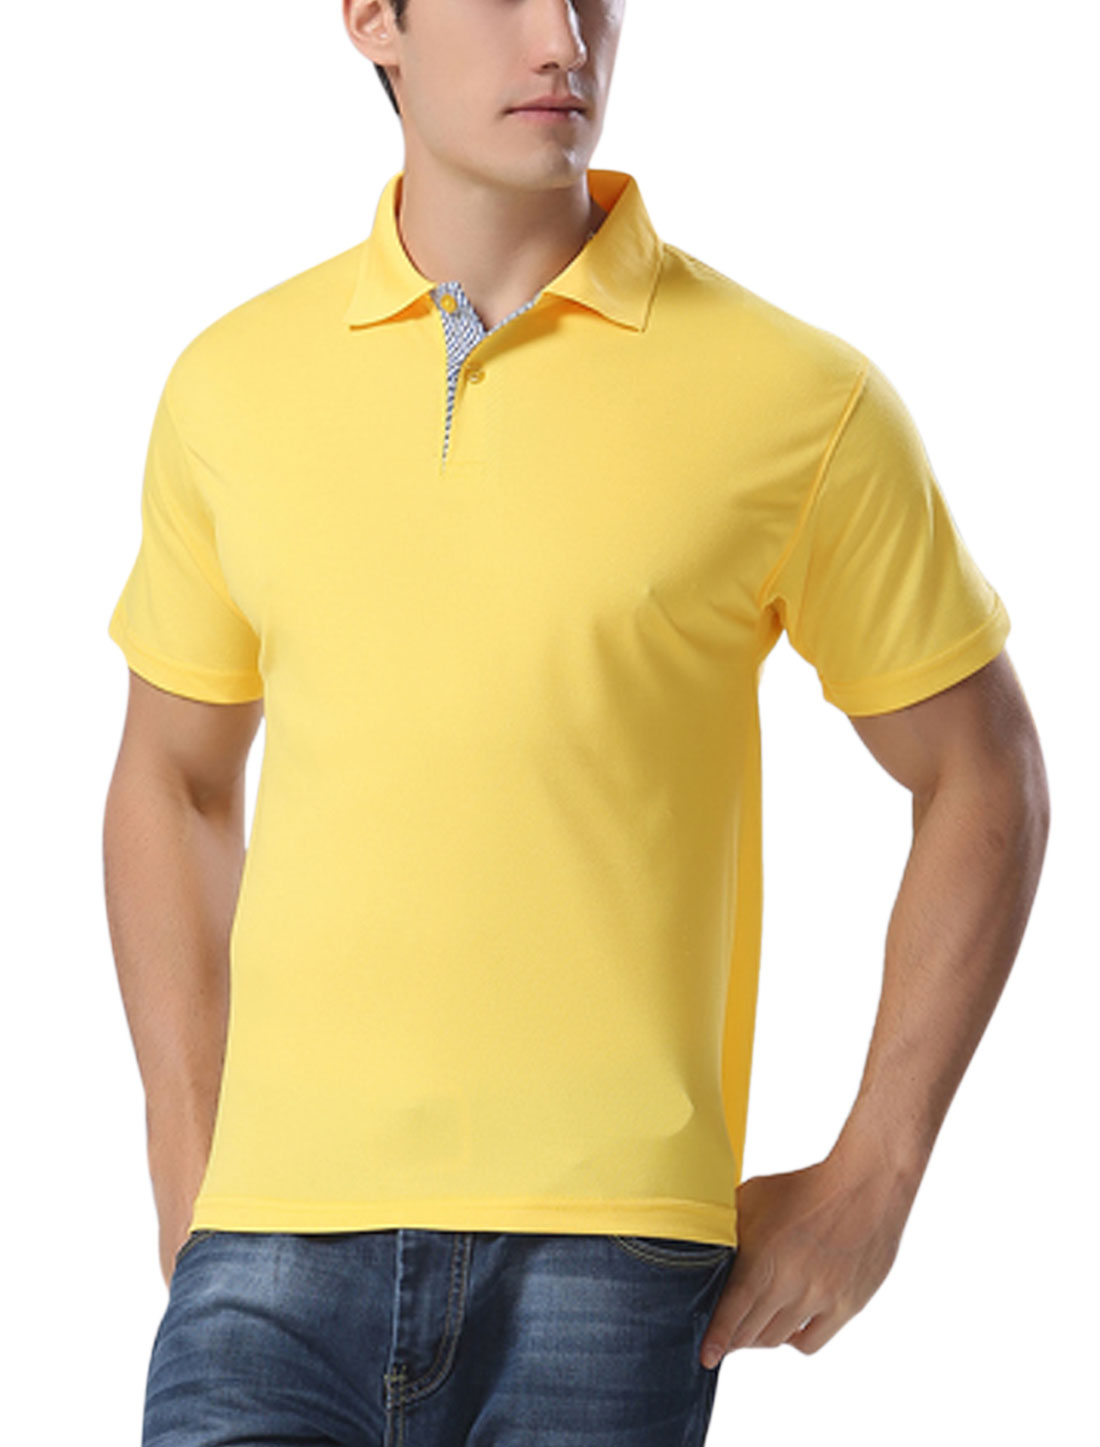 Man Two Button Closed Casual Polo Shirts Yellow M